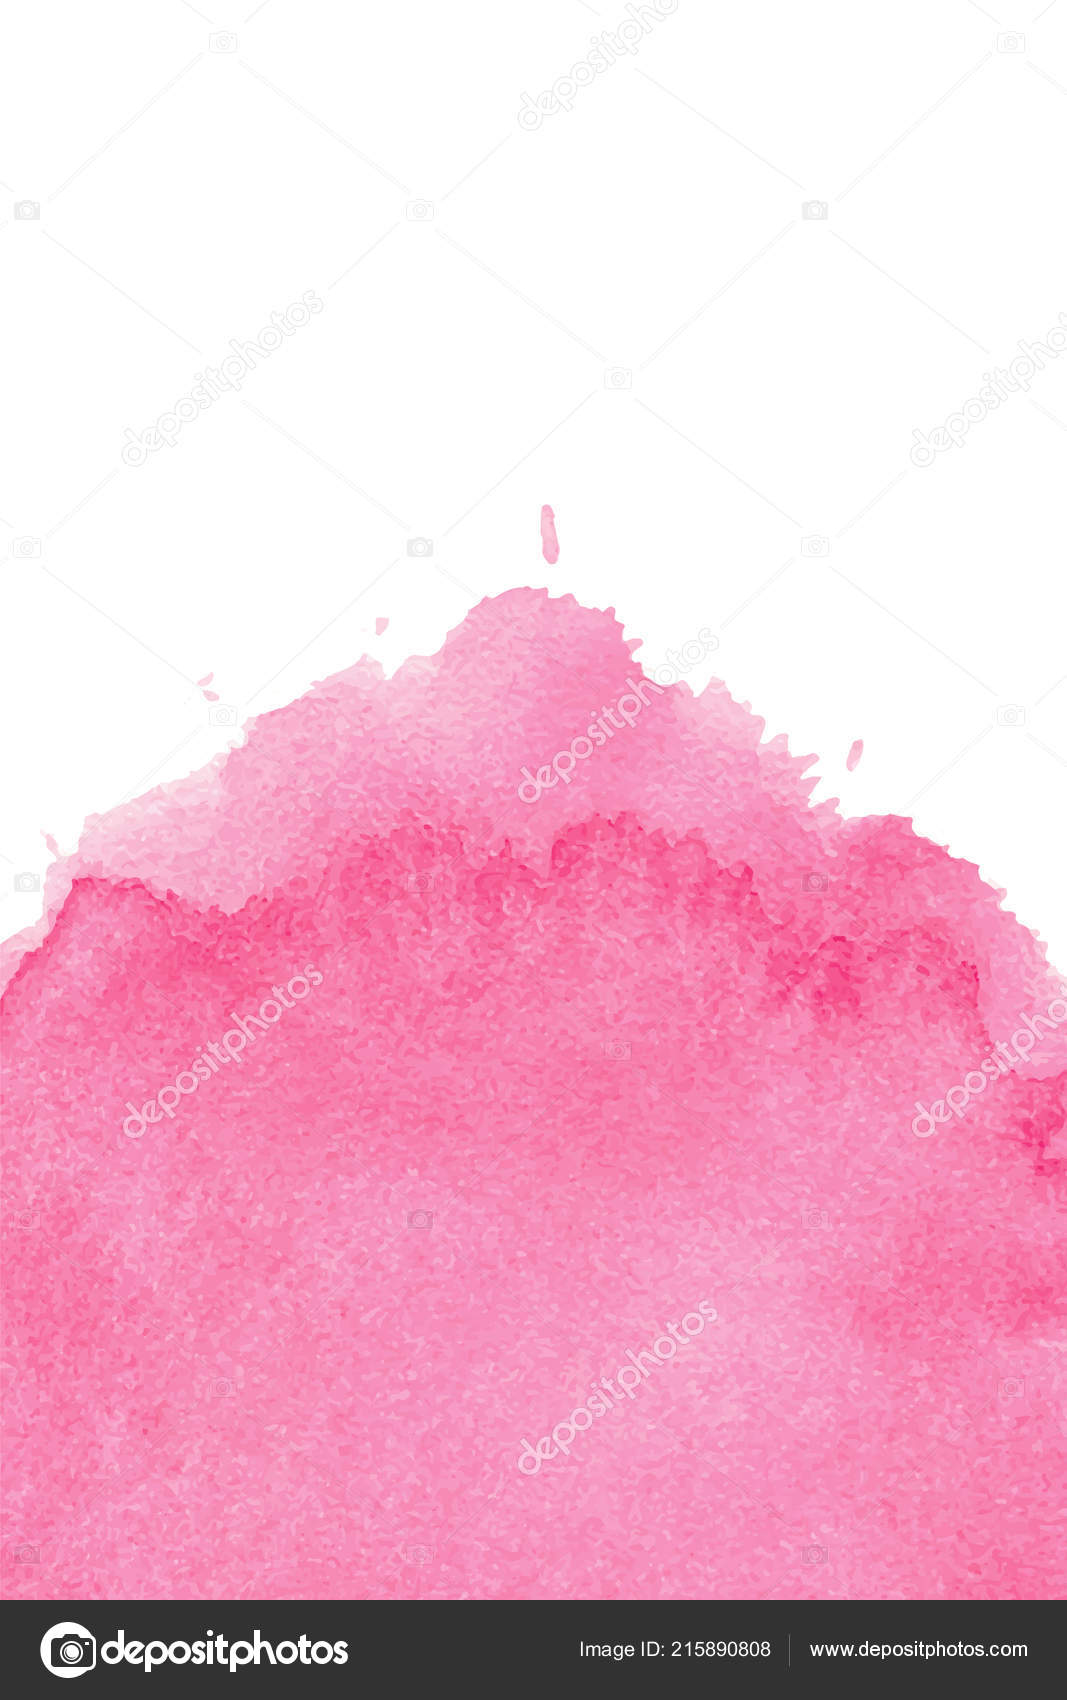 pink abstract watercolor background space text editable template